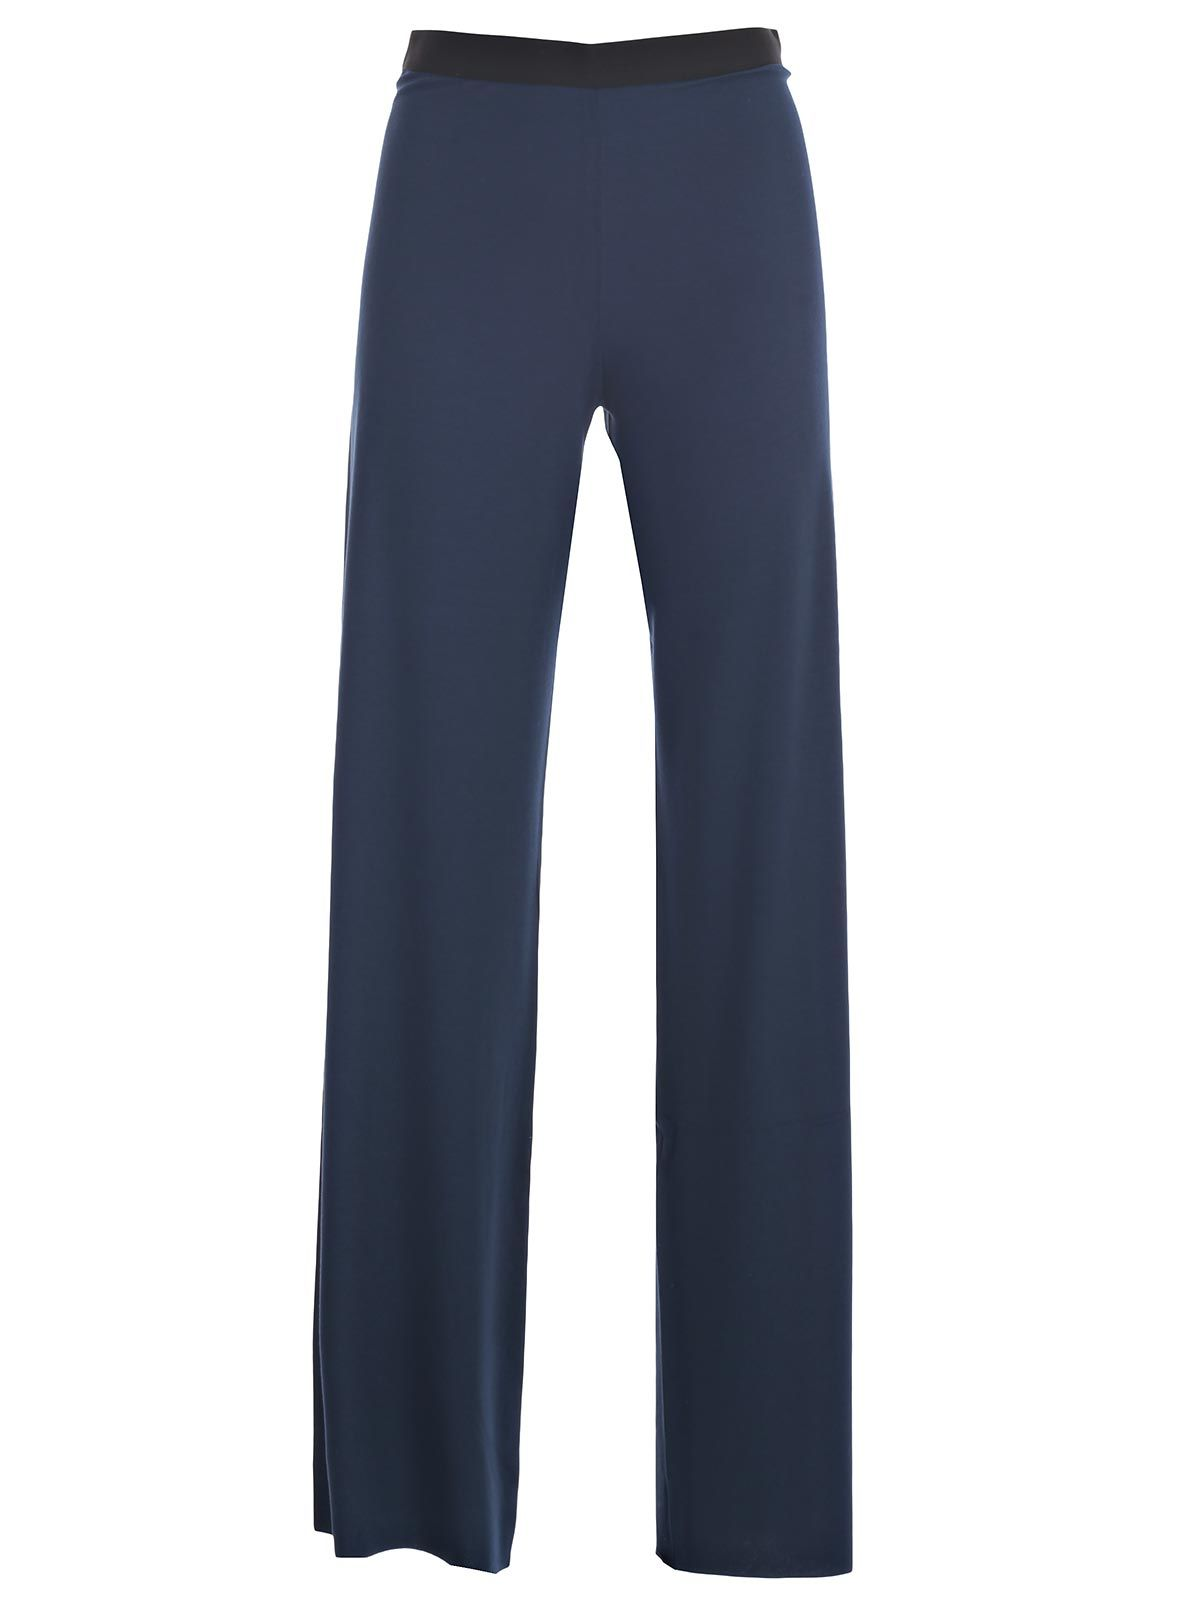 Stefano Mortari Trousers